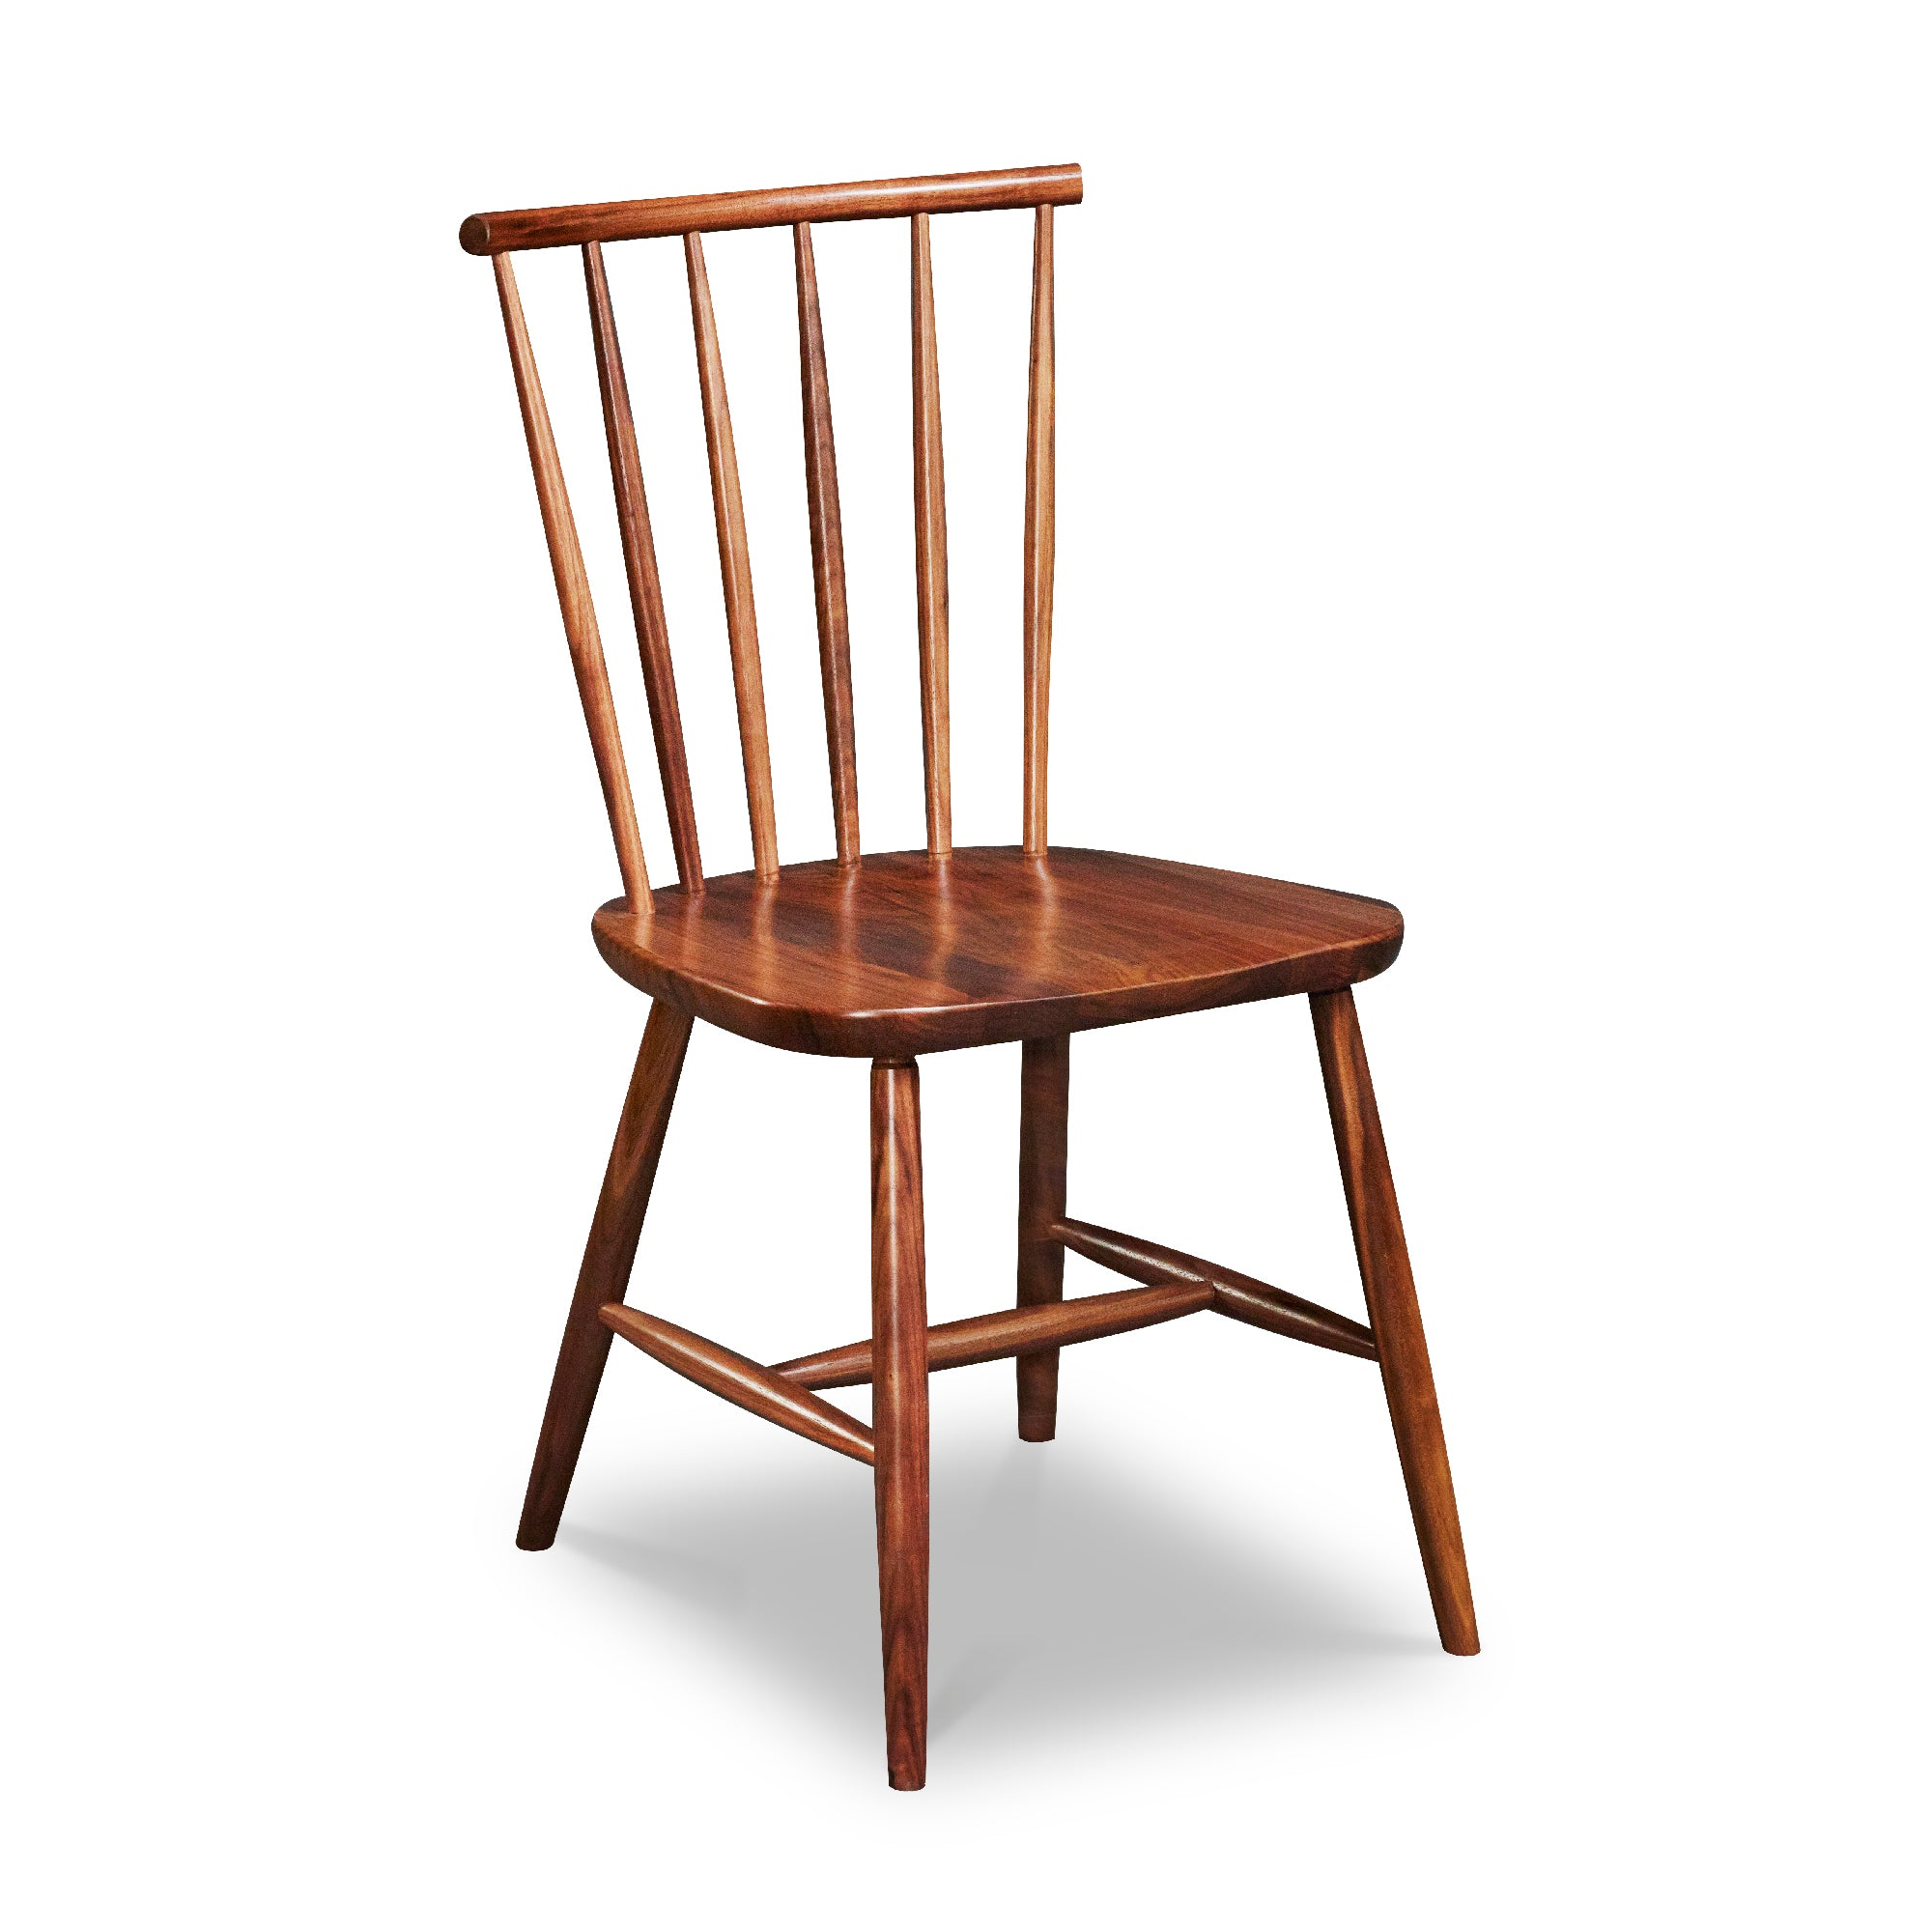 Windsor style chair with round crest in walnut